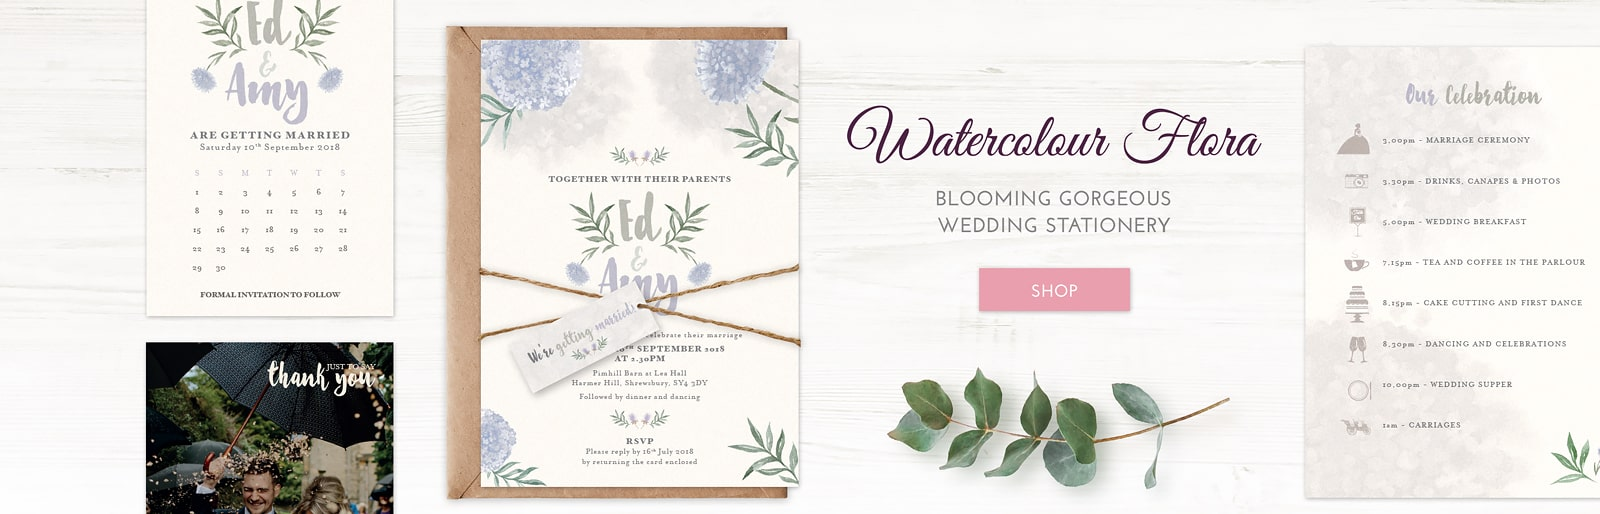 Wedding Invitation Watercolour Collection Luxury Wedding Stationery